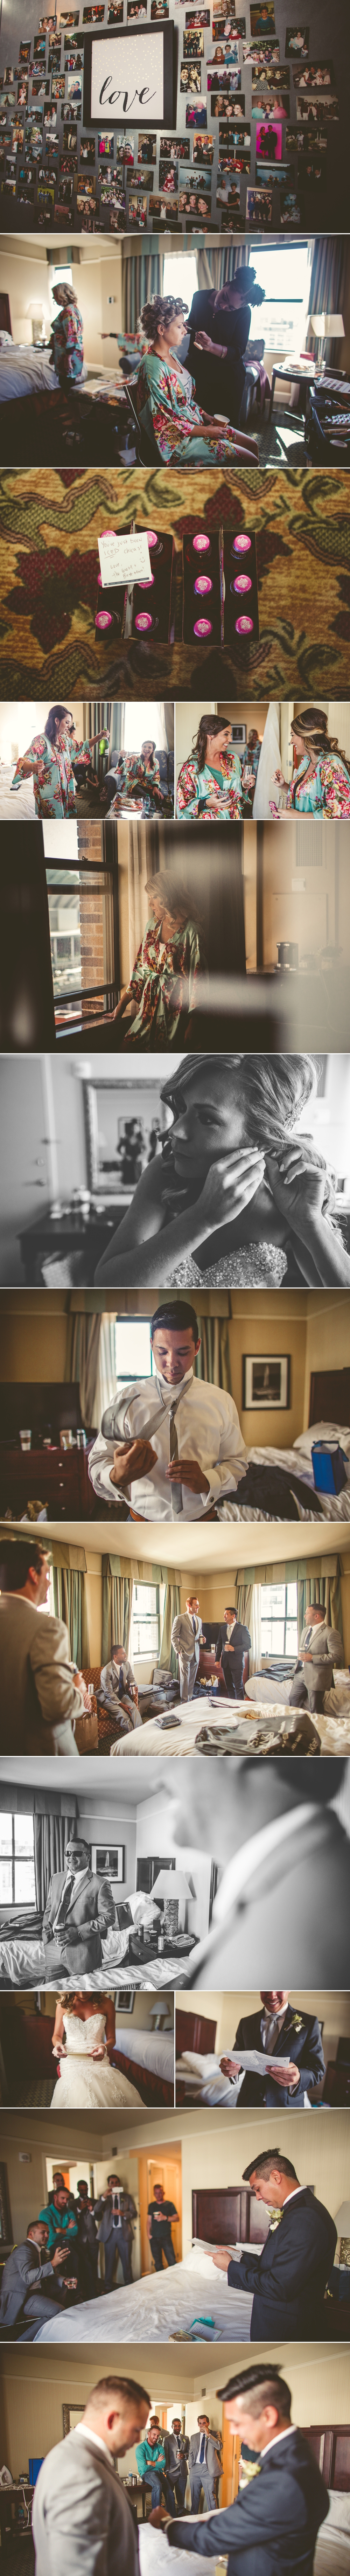 jason_domingues_photography_best_kansas_city_wedding_photographer_kc_weddings_berg0001